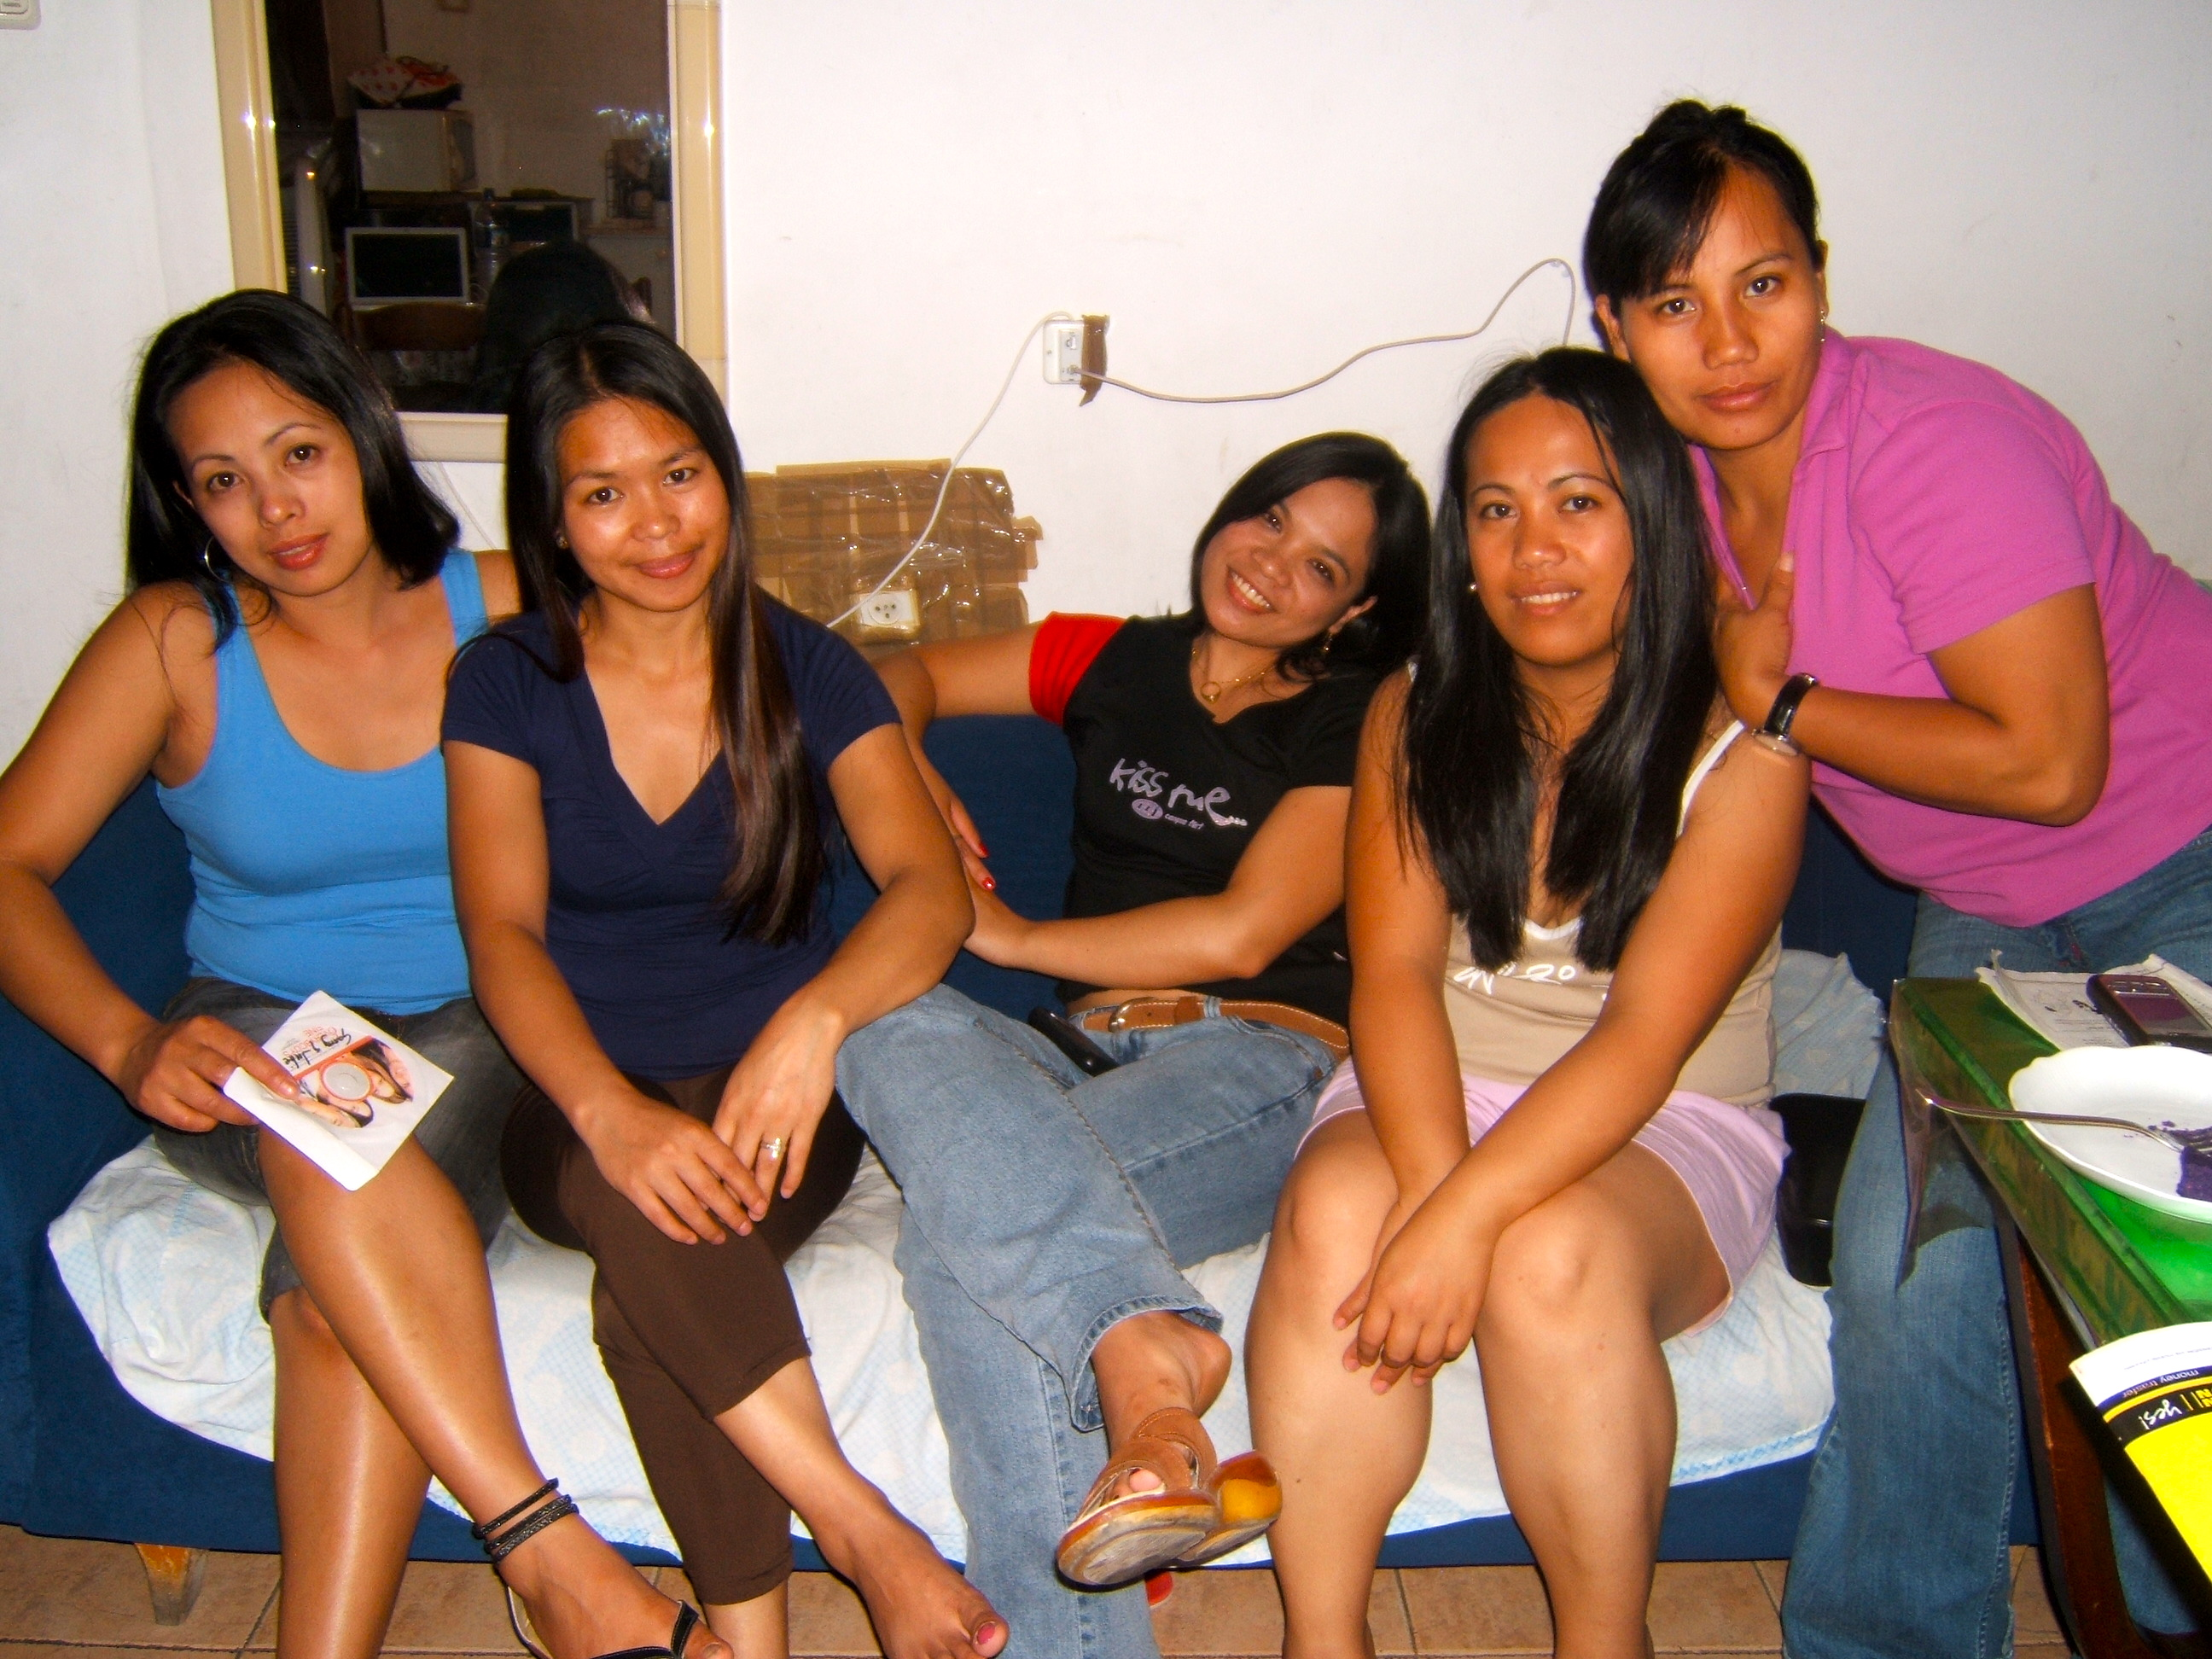 from left to right) Vangie, JI, Maricel, Daisybeth and Minnie, all ...